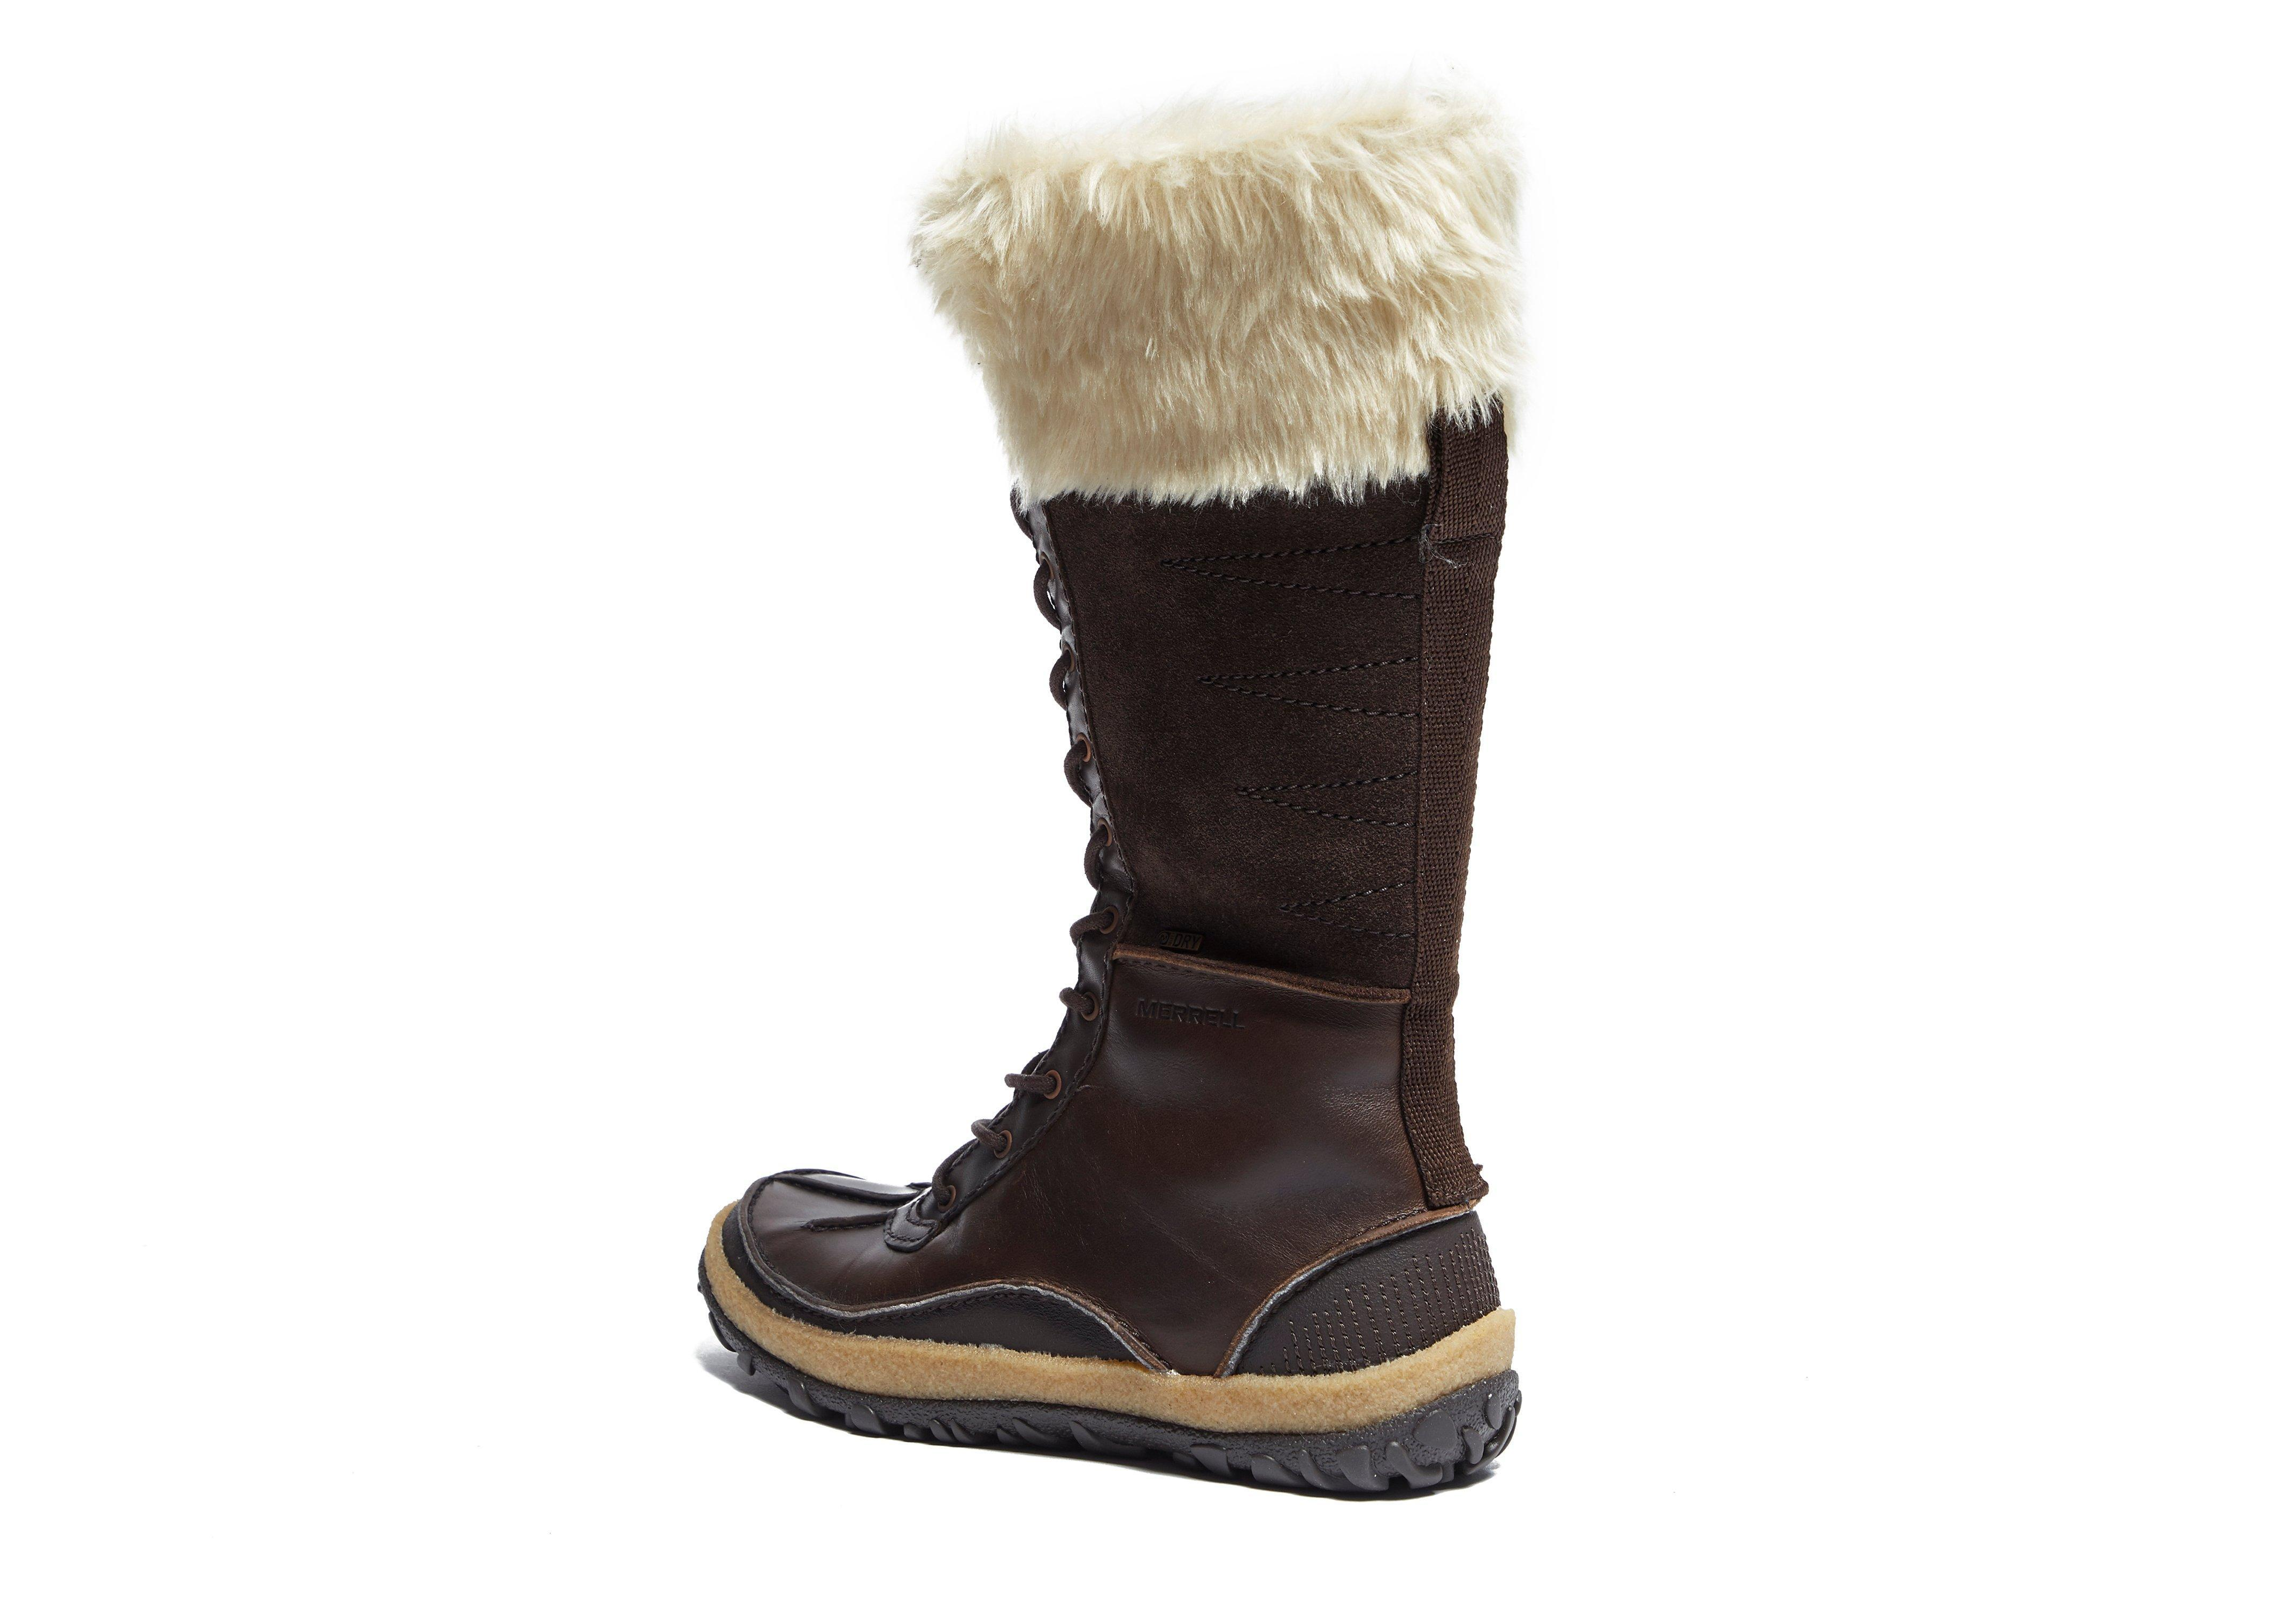 9b17d9407c Merrell Tremblant Tall Polar Waterproof Women?s in Brown - Lyst